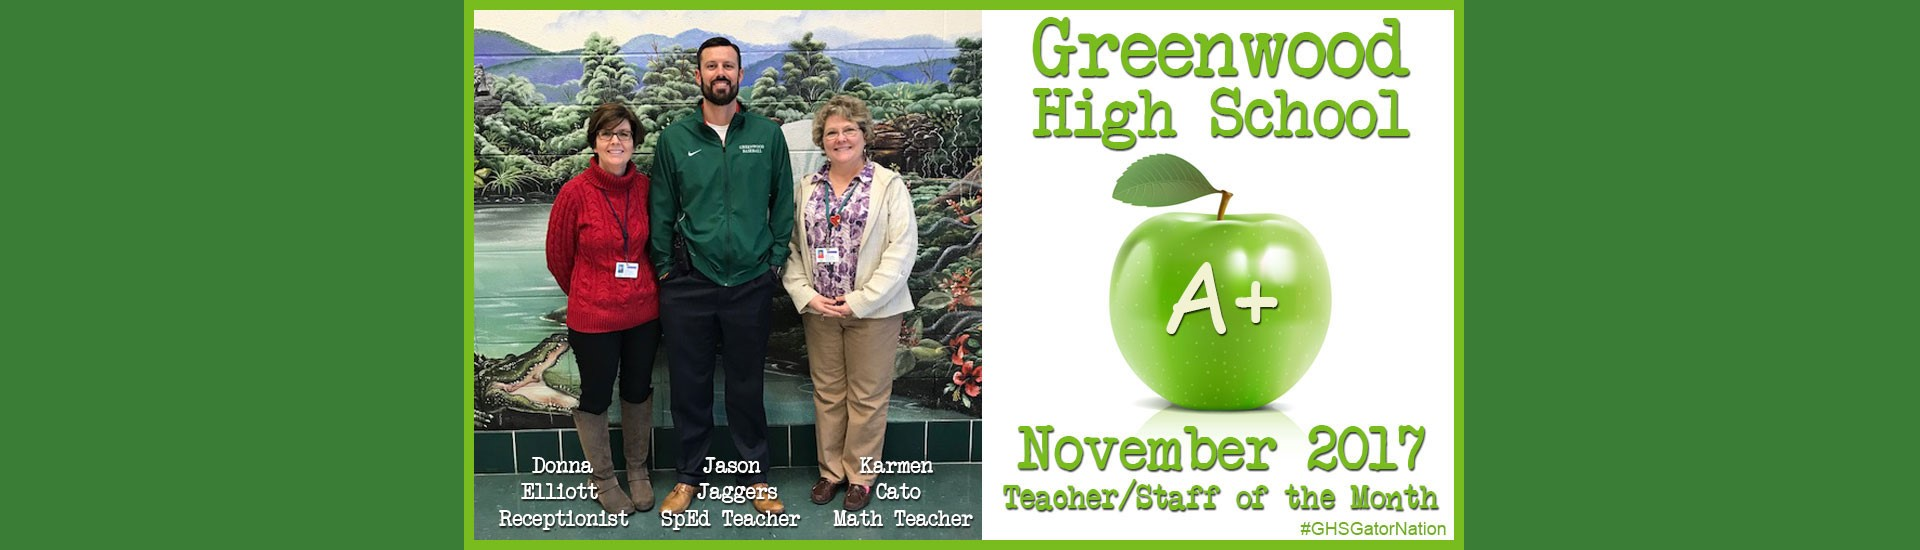 November Teachers of the Month